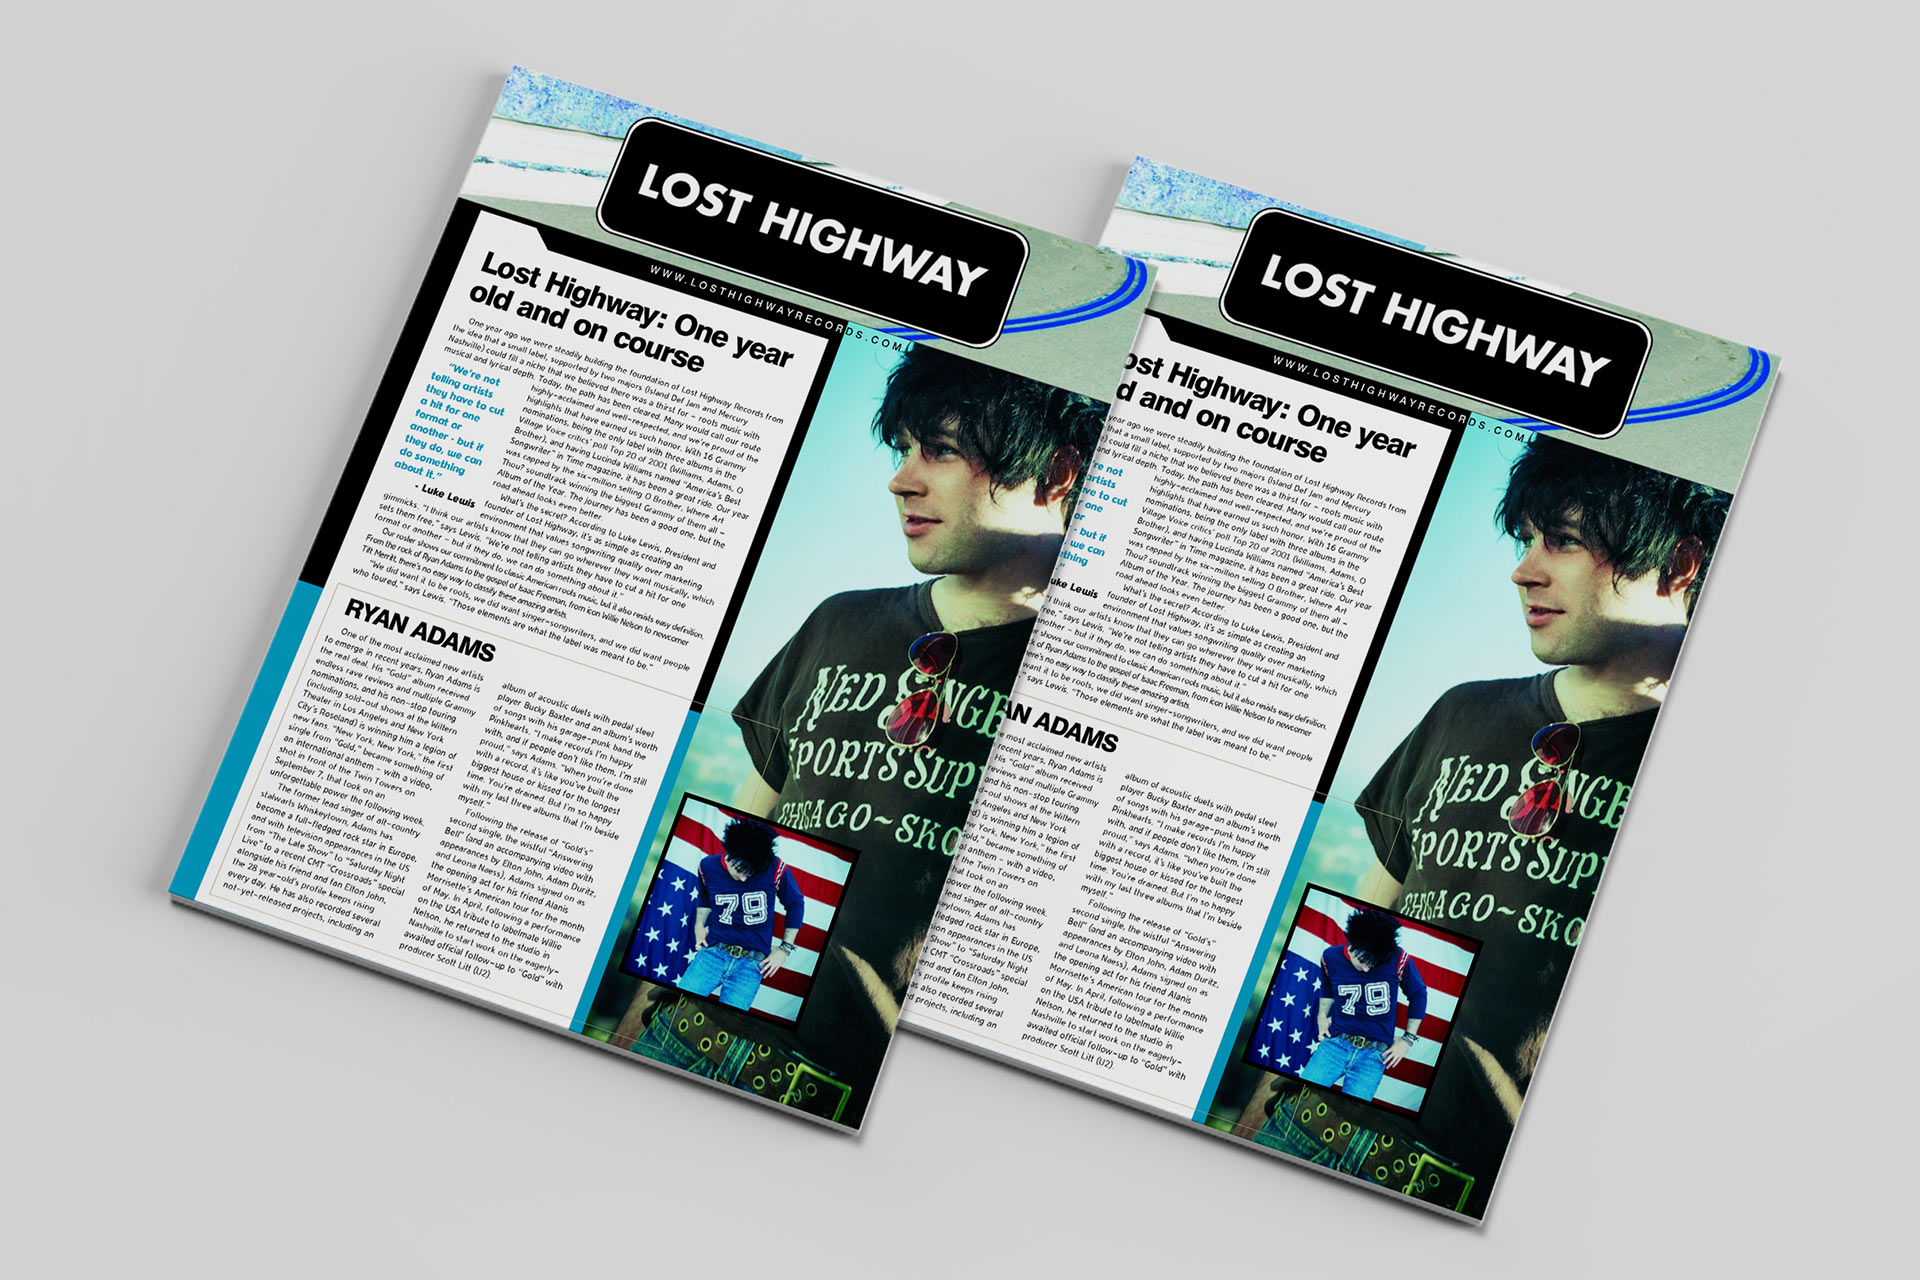 Lost Highway cover, Ryan Adams